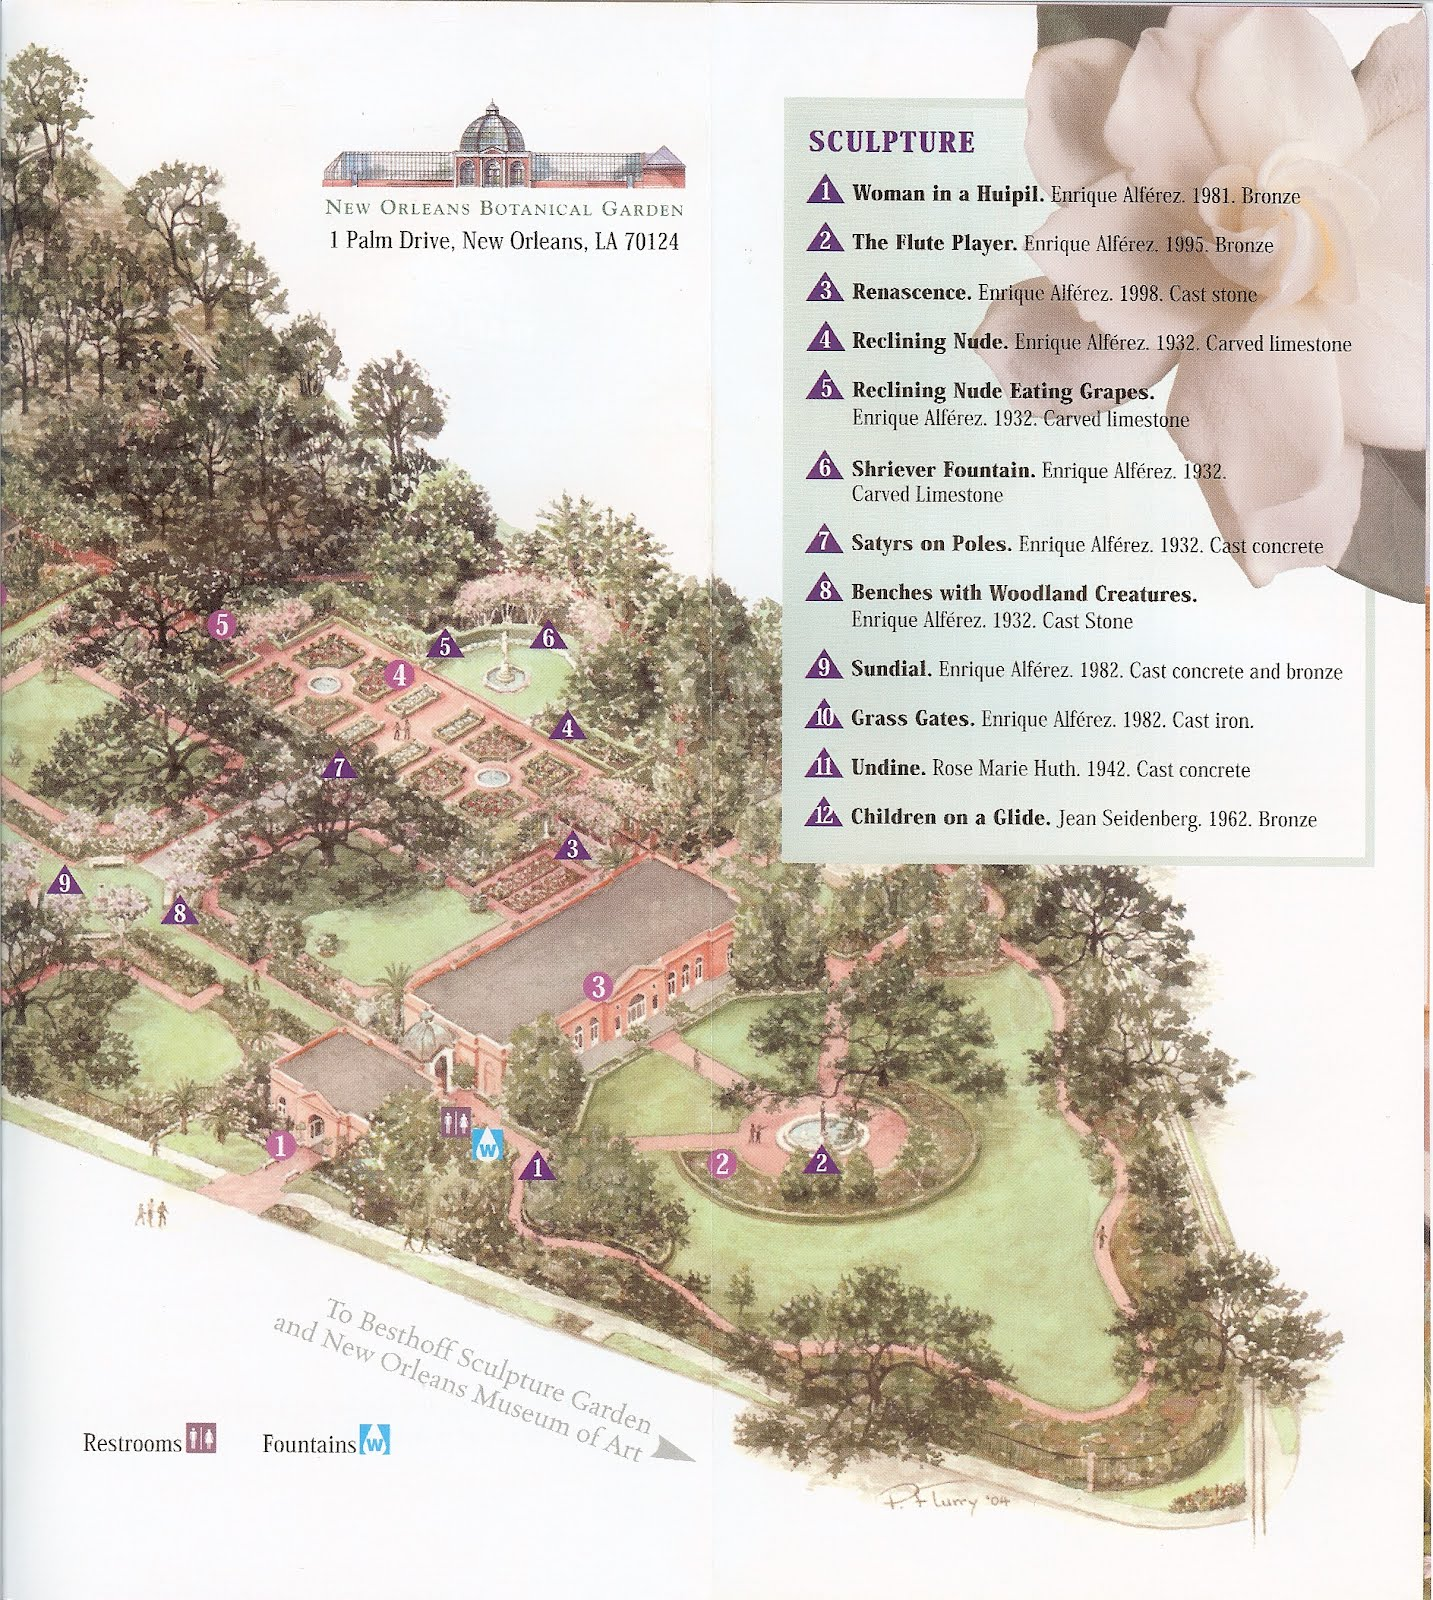 ... New Orleans Botanical Garden Brochure And Garden Map